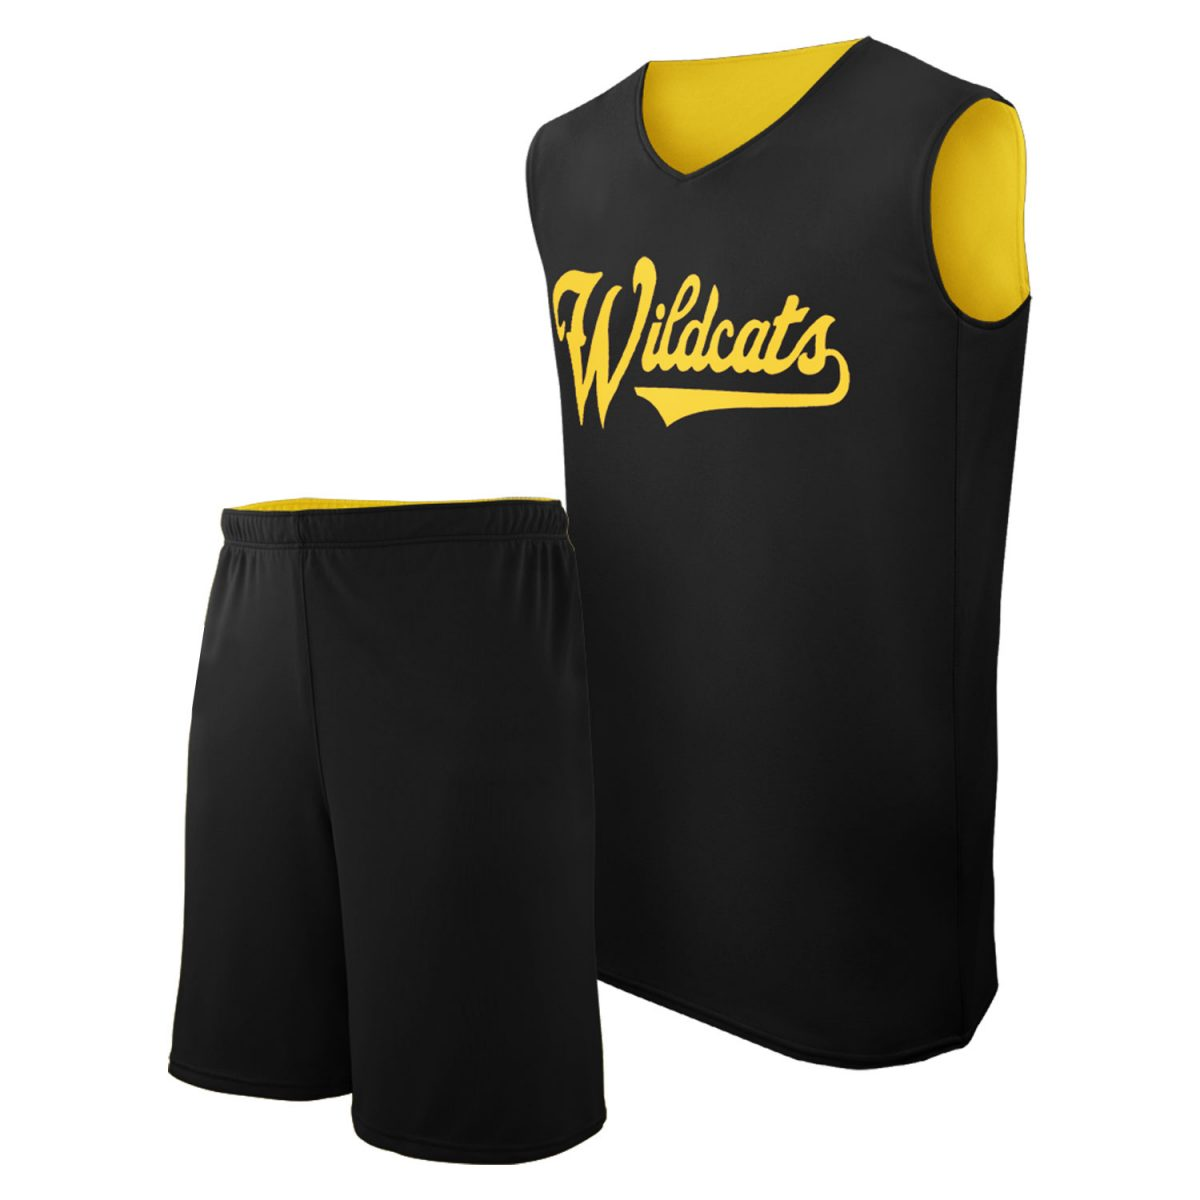 Boys Basketball Uniforms Manufacturers in Denmark